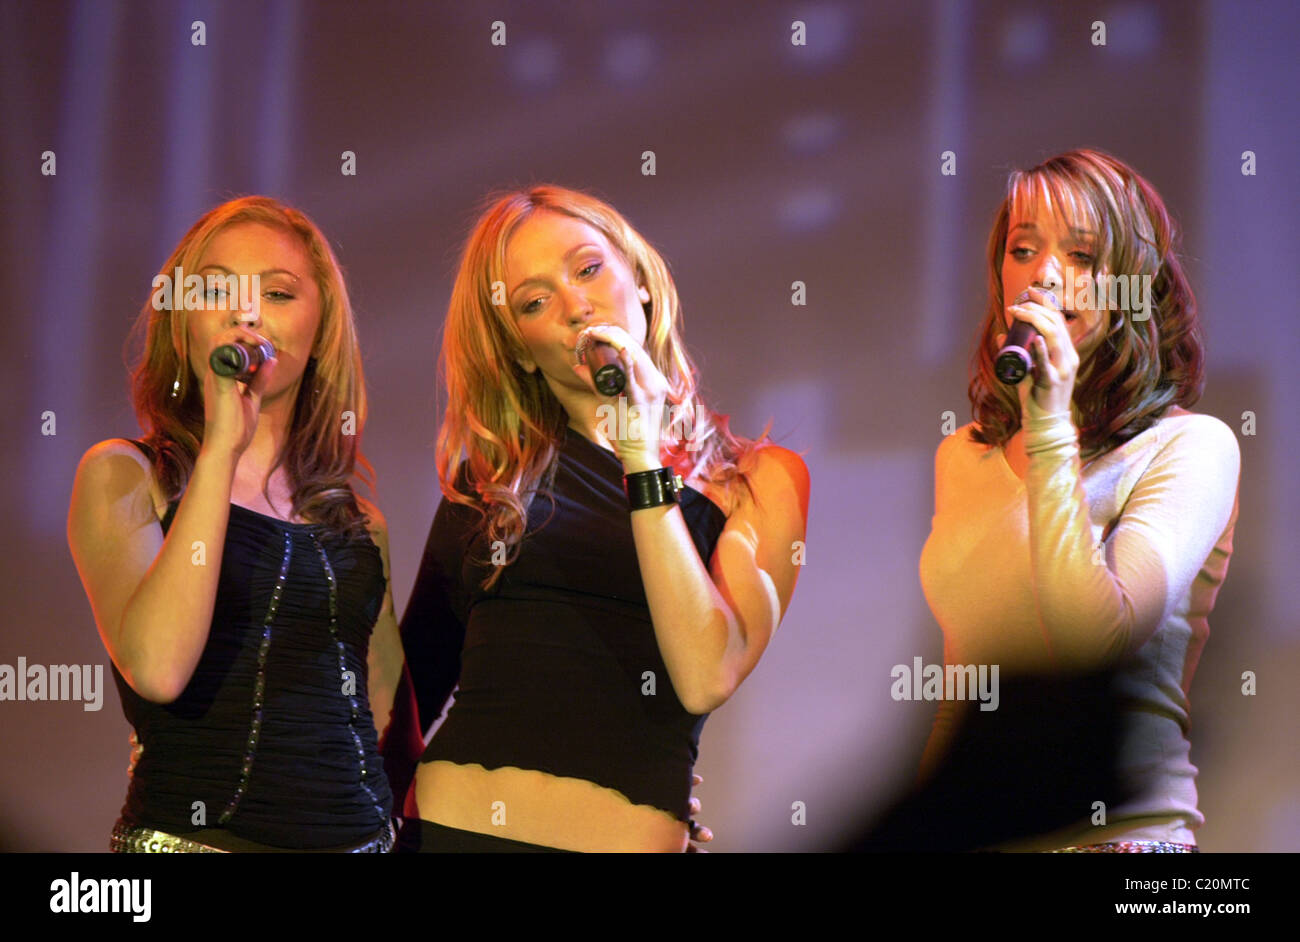 Atomic Kitten Natasha Hamilton, Liz McClarnon, and Jenny Frost in 2003 - Stock Image